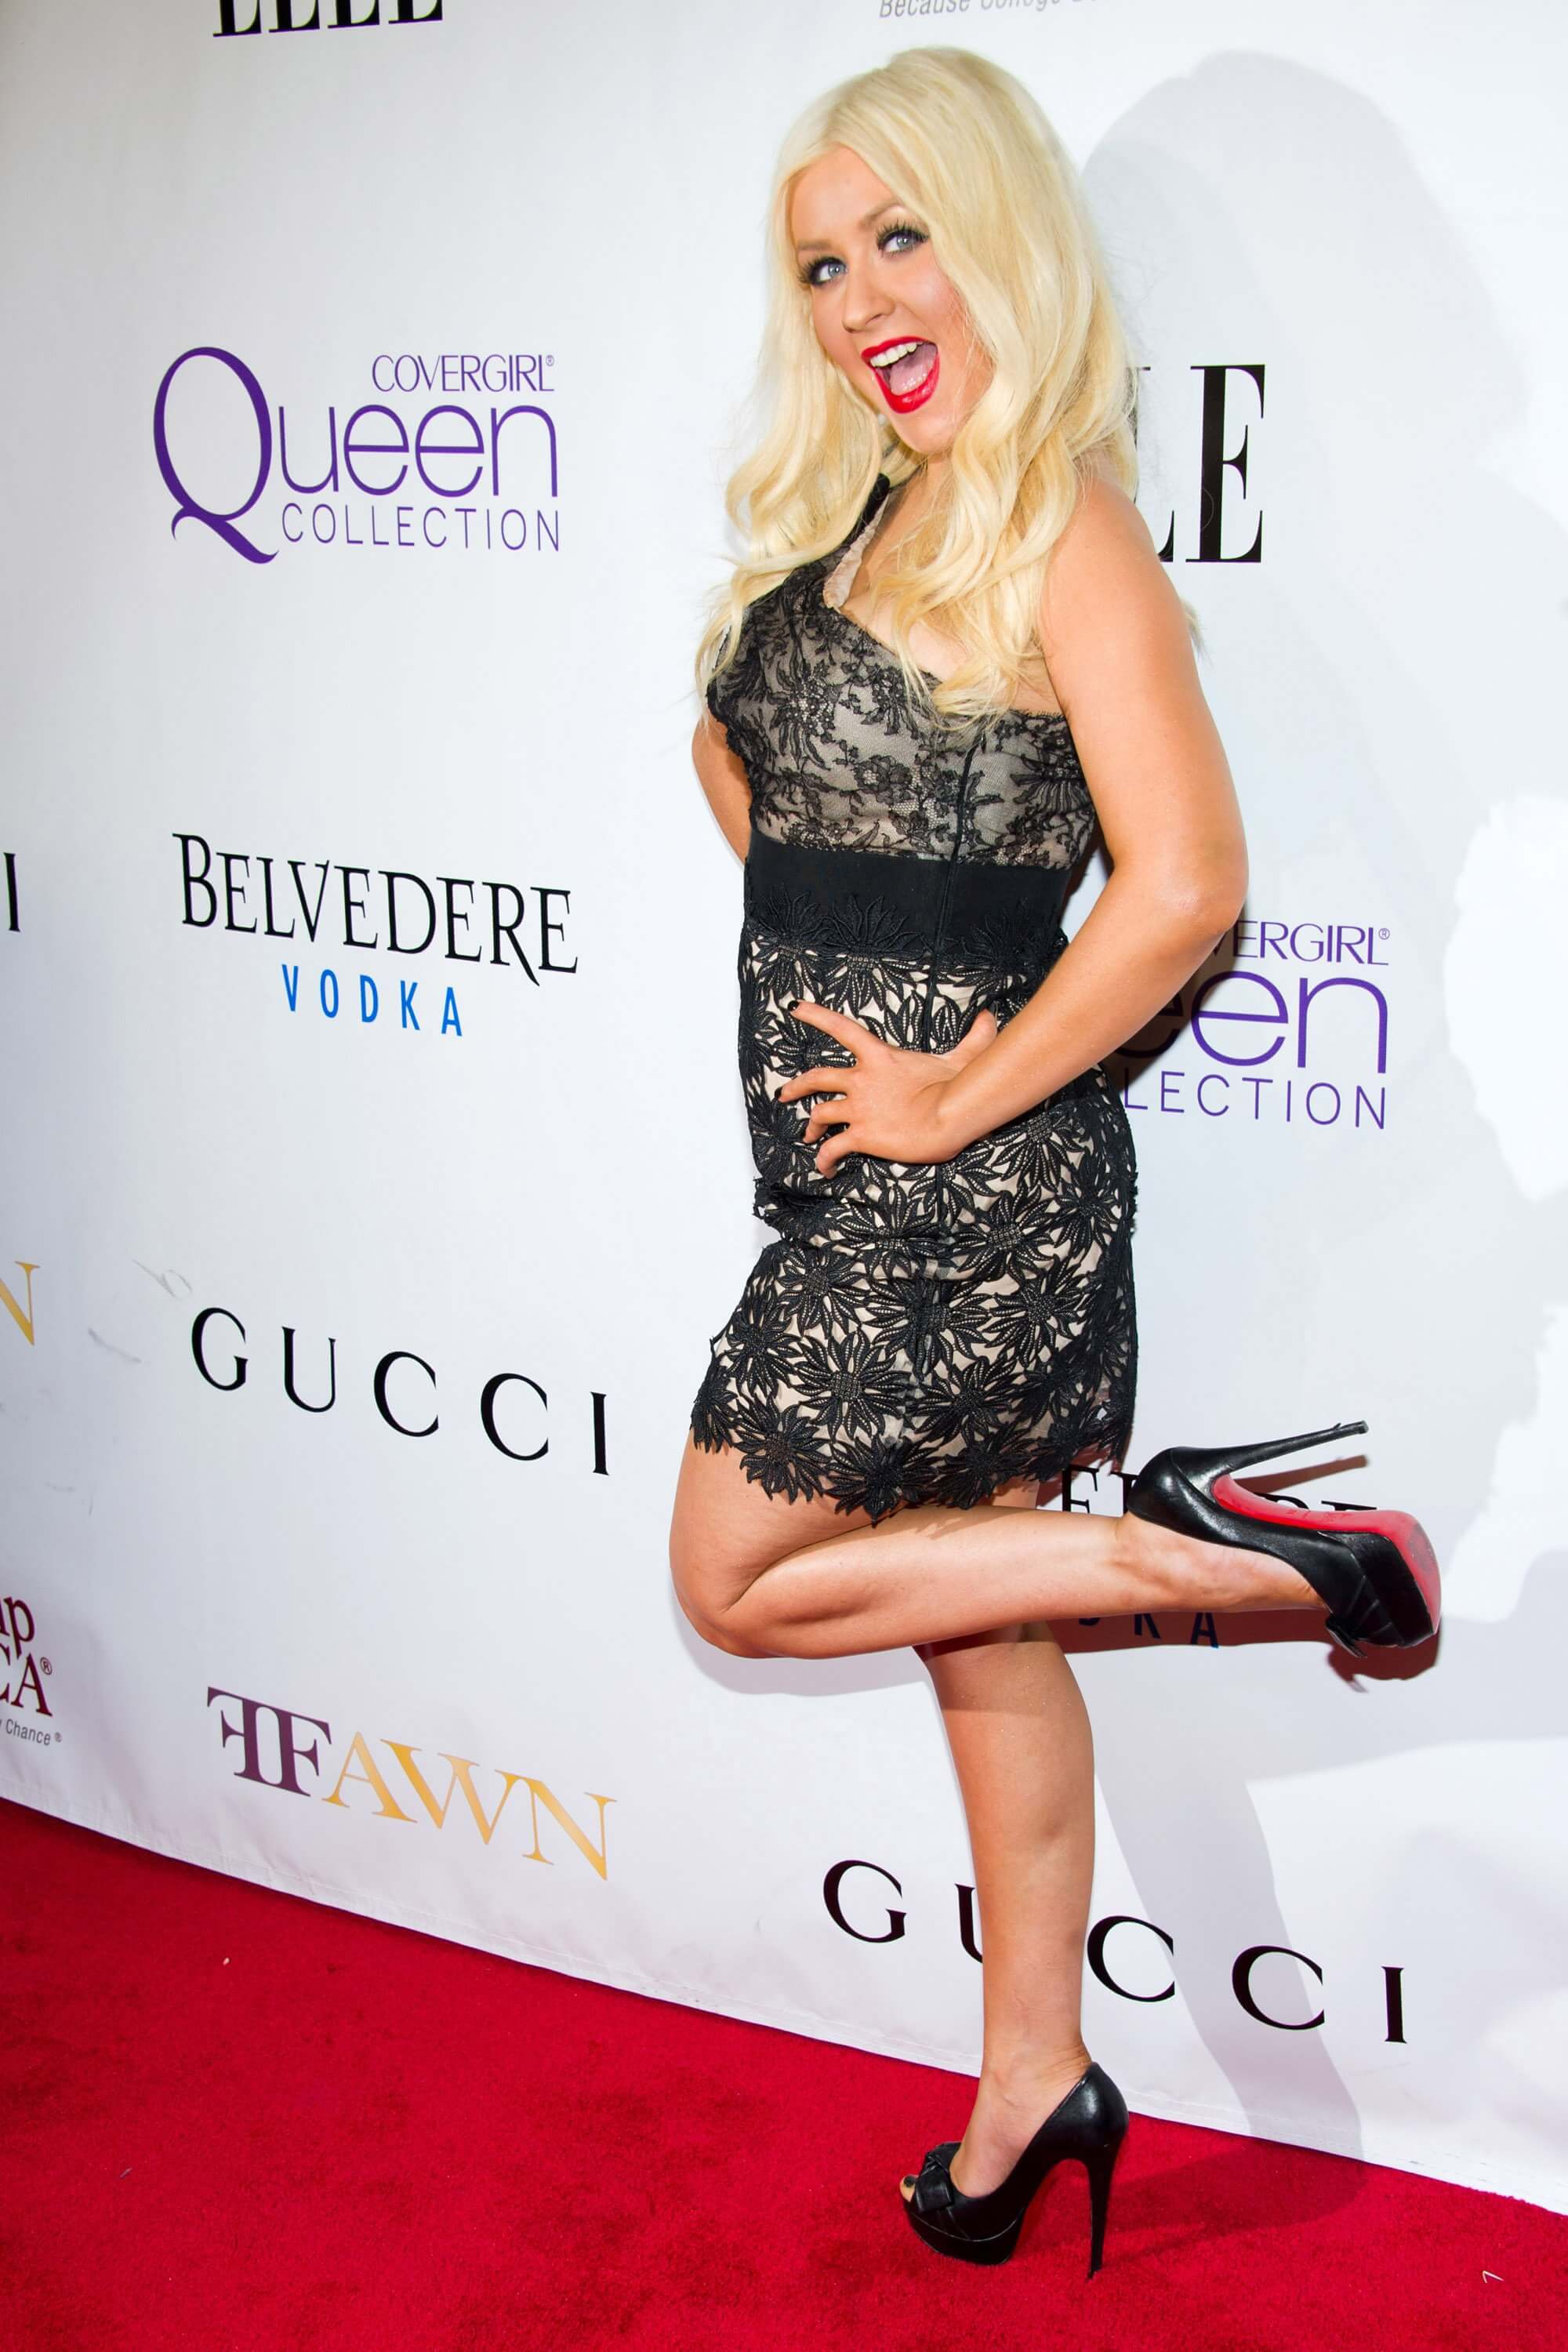 christina aguilera Sexy Feet in high heels